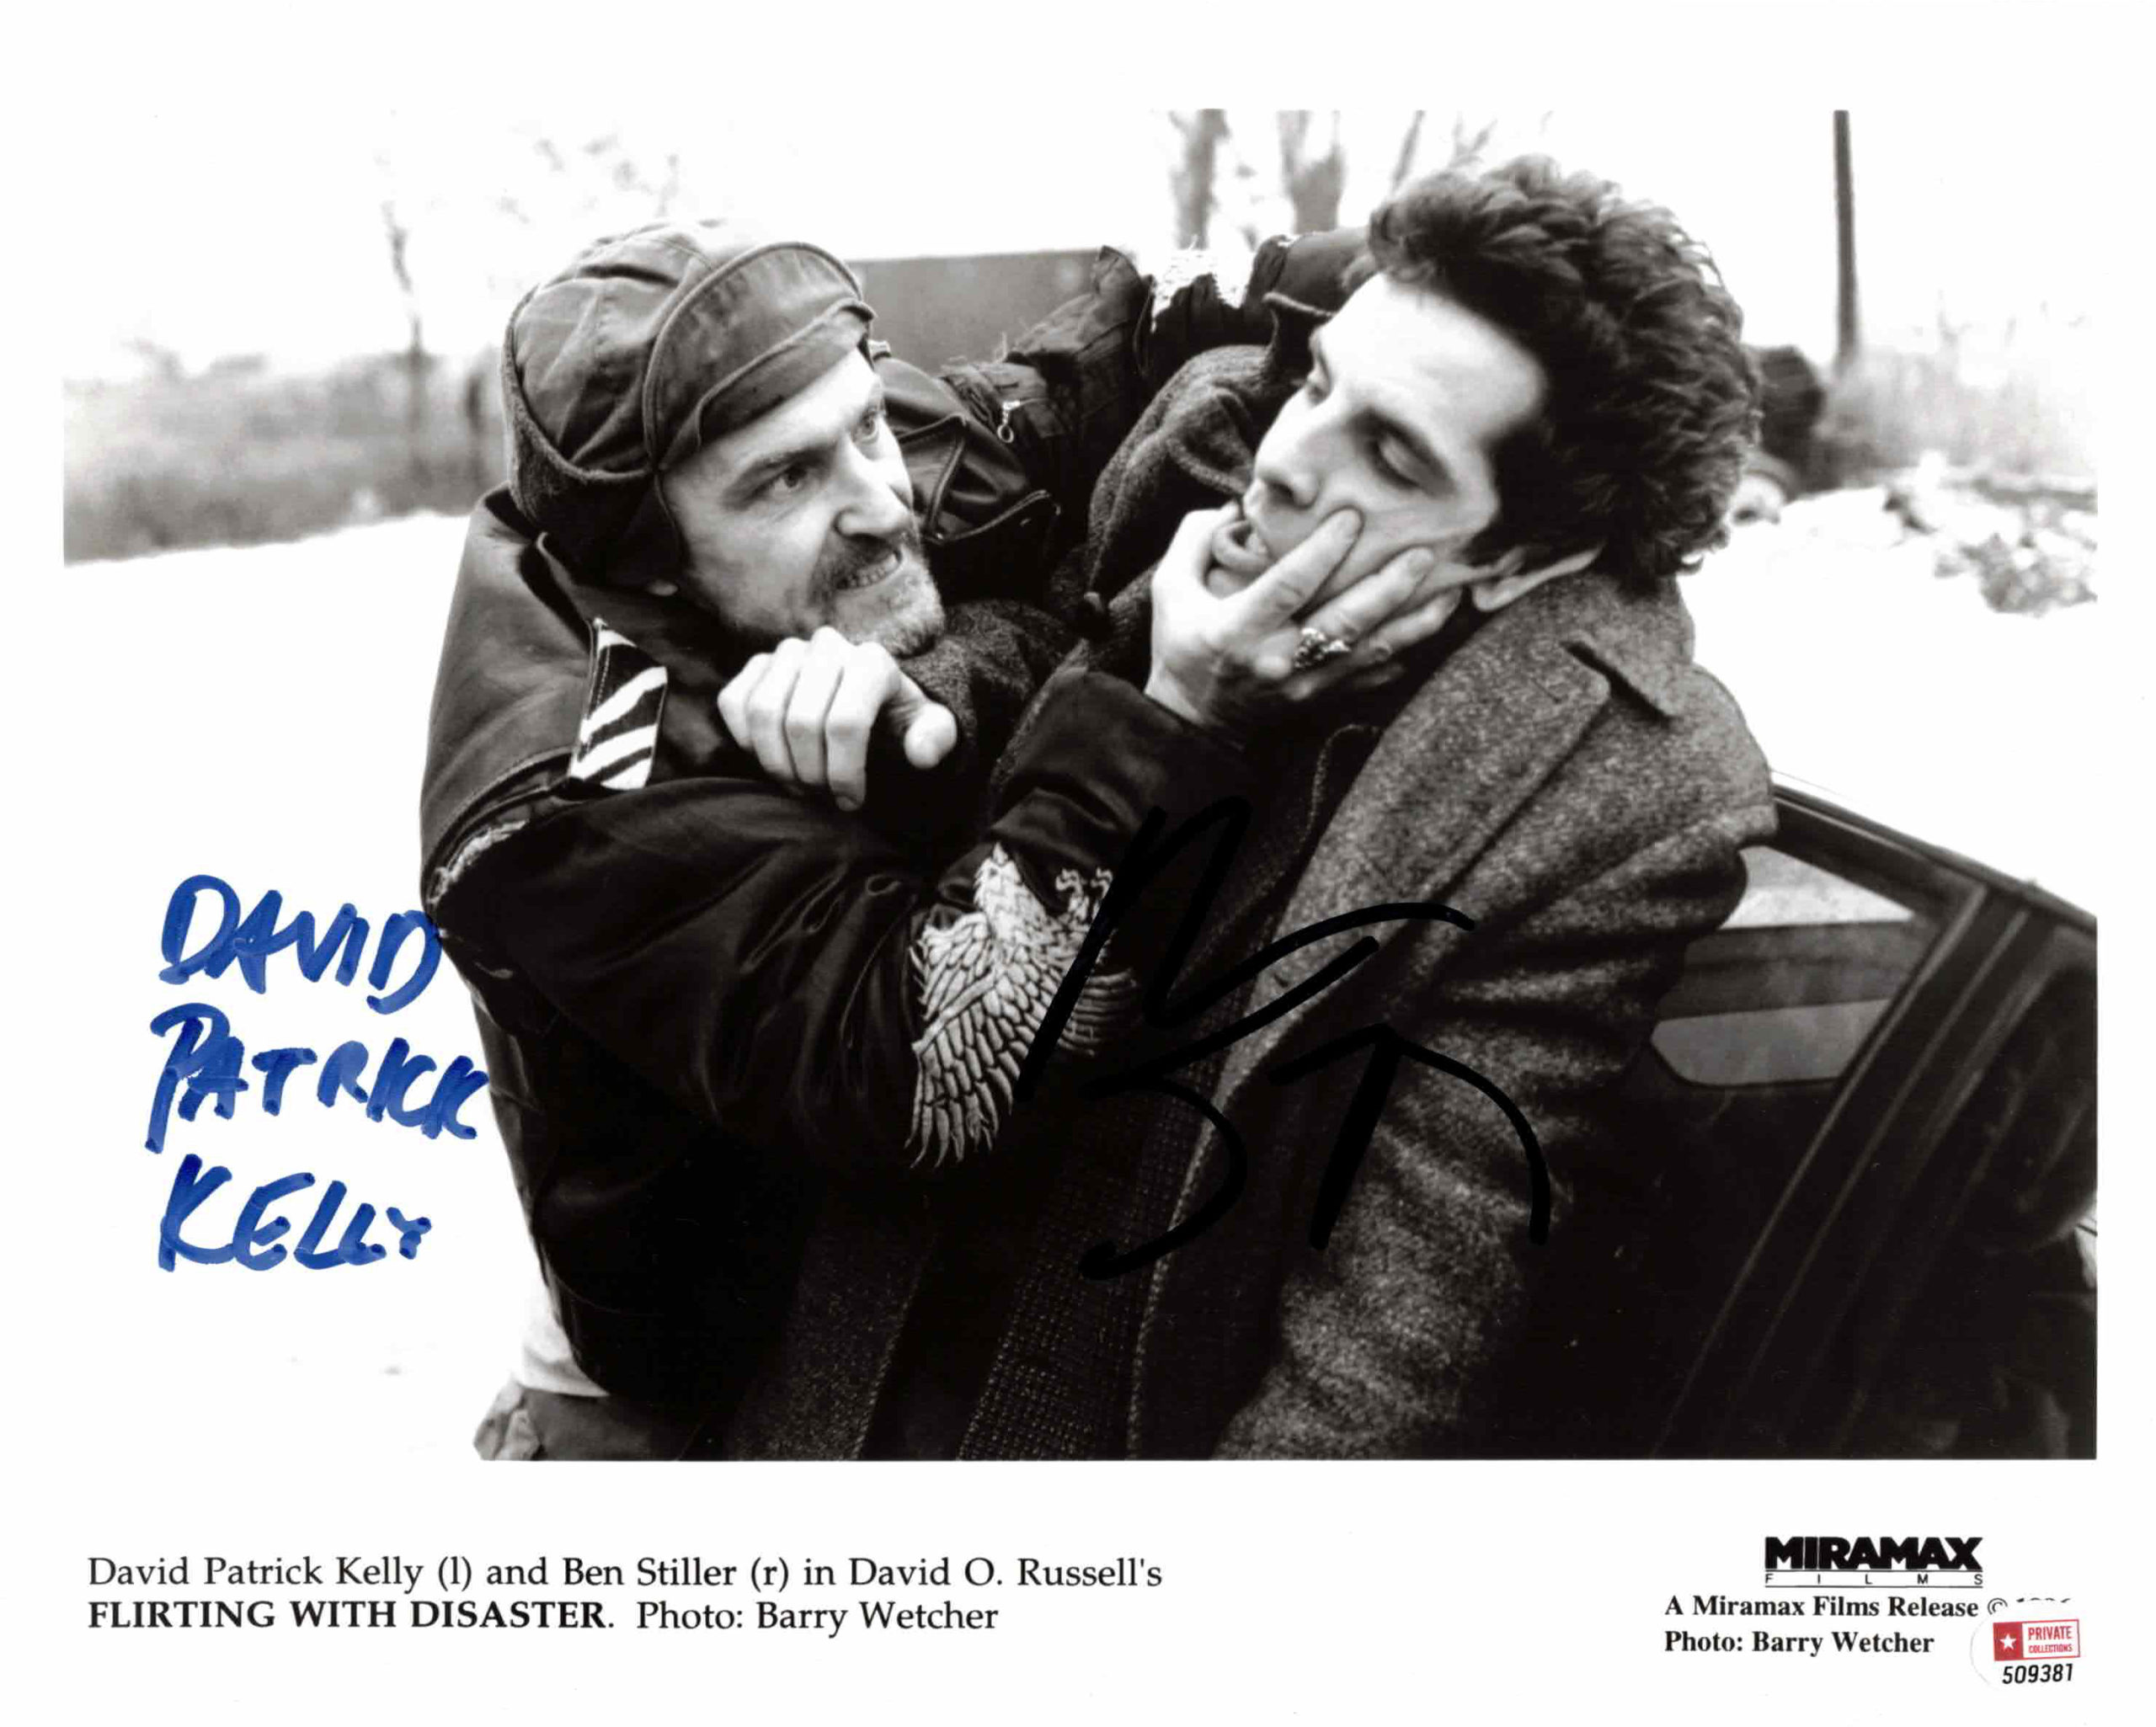 Ben Stiller & David Patrick Kelly - autogram